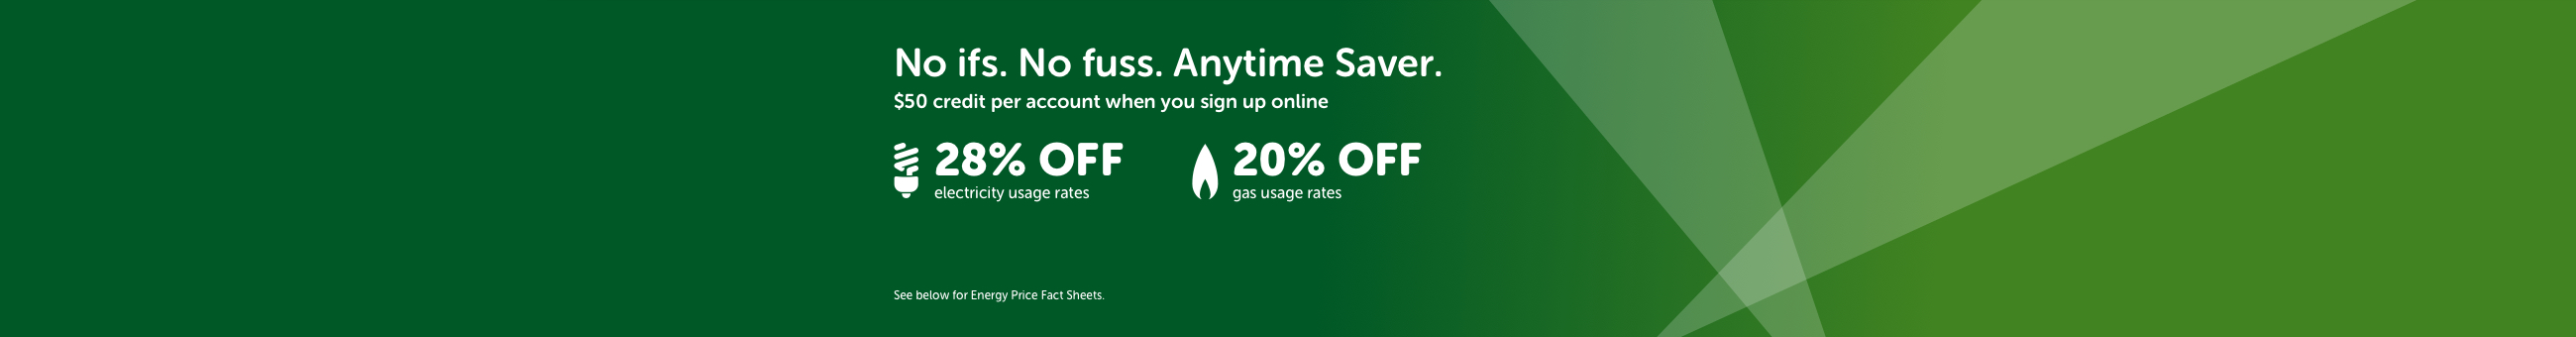 No ifs. No fuss. Anytime Saver. $50 credit per account when you sign up online.